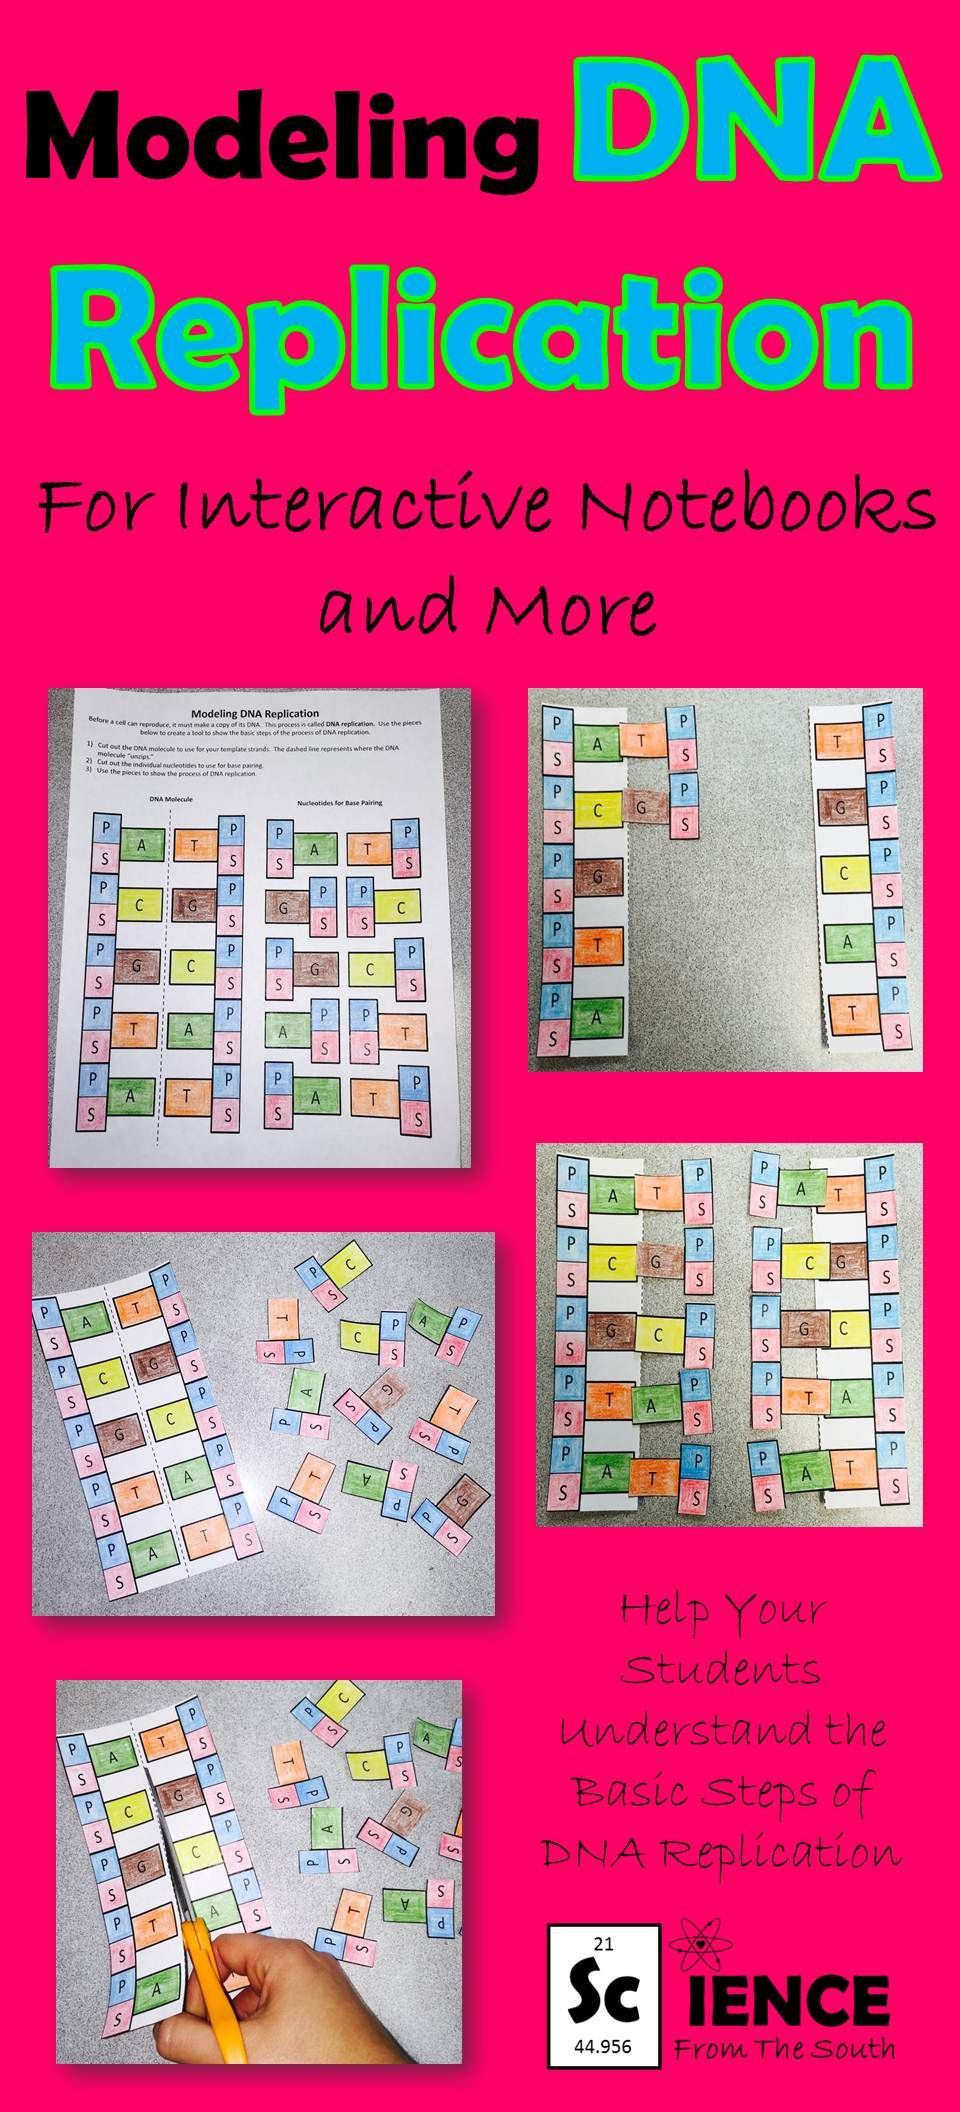 Modeling DNA Replication for Interactive Notebooks and More